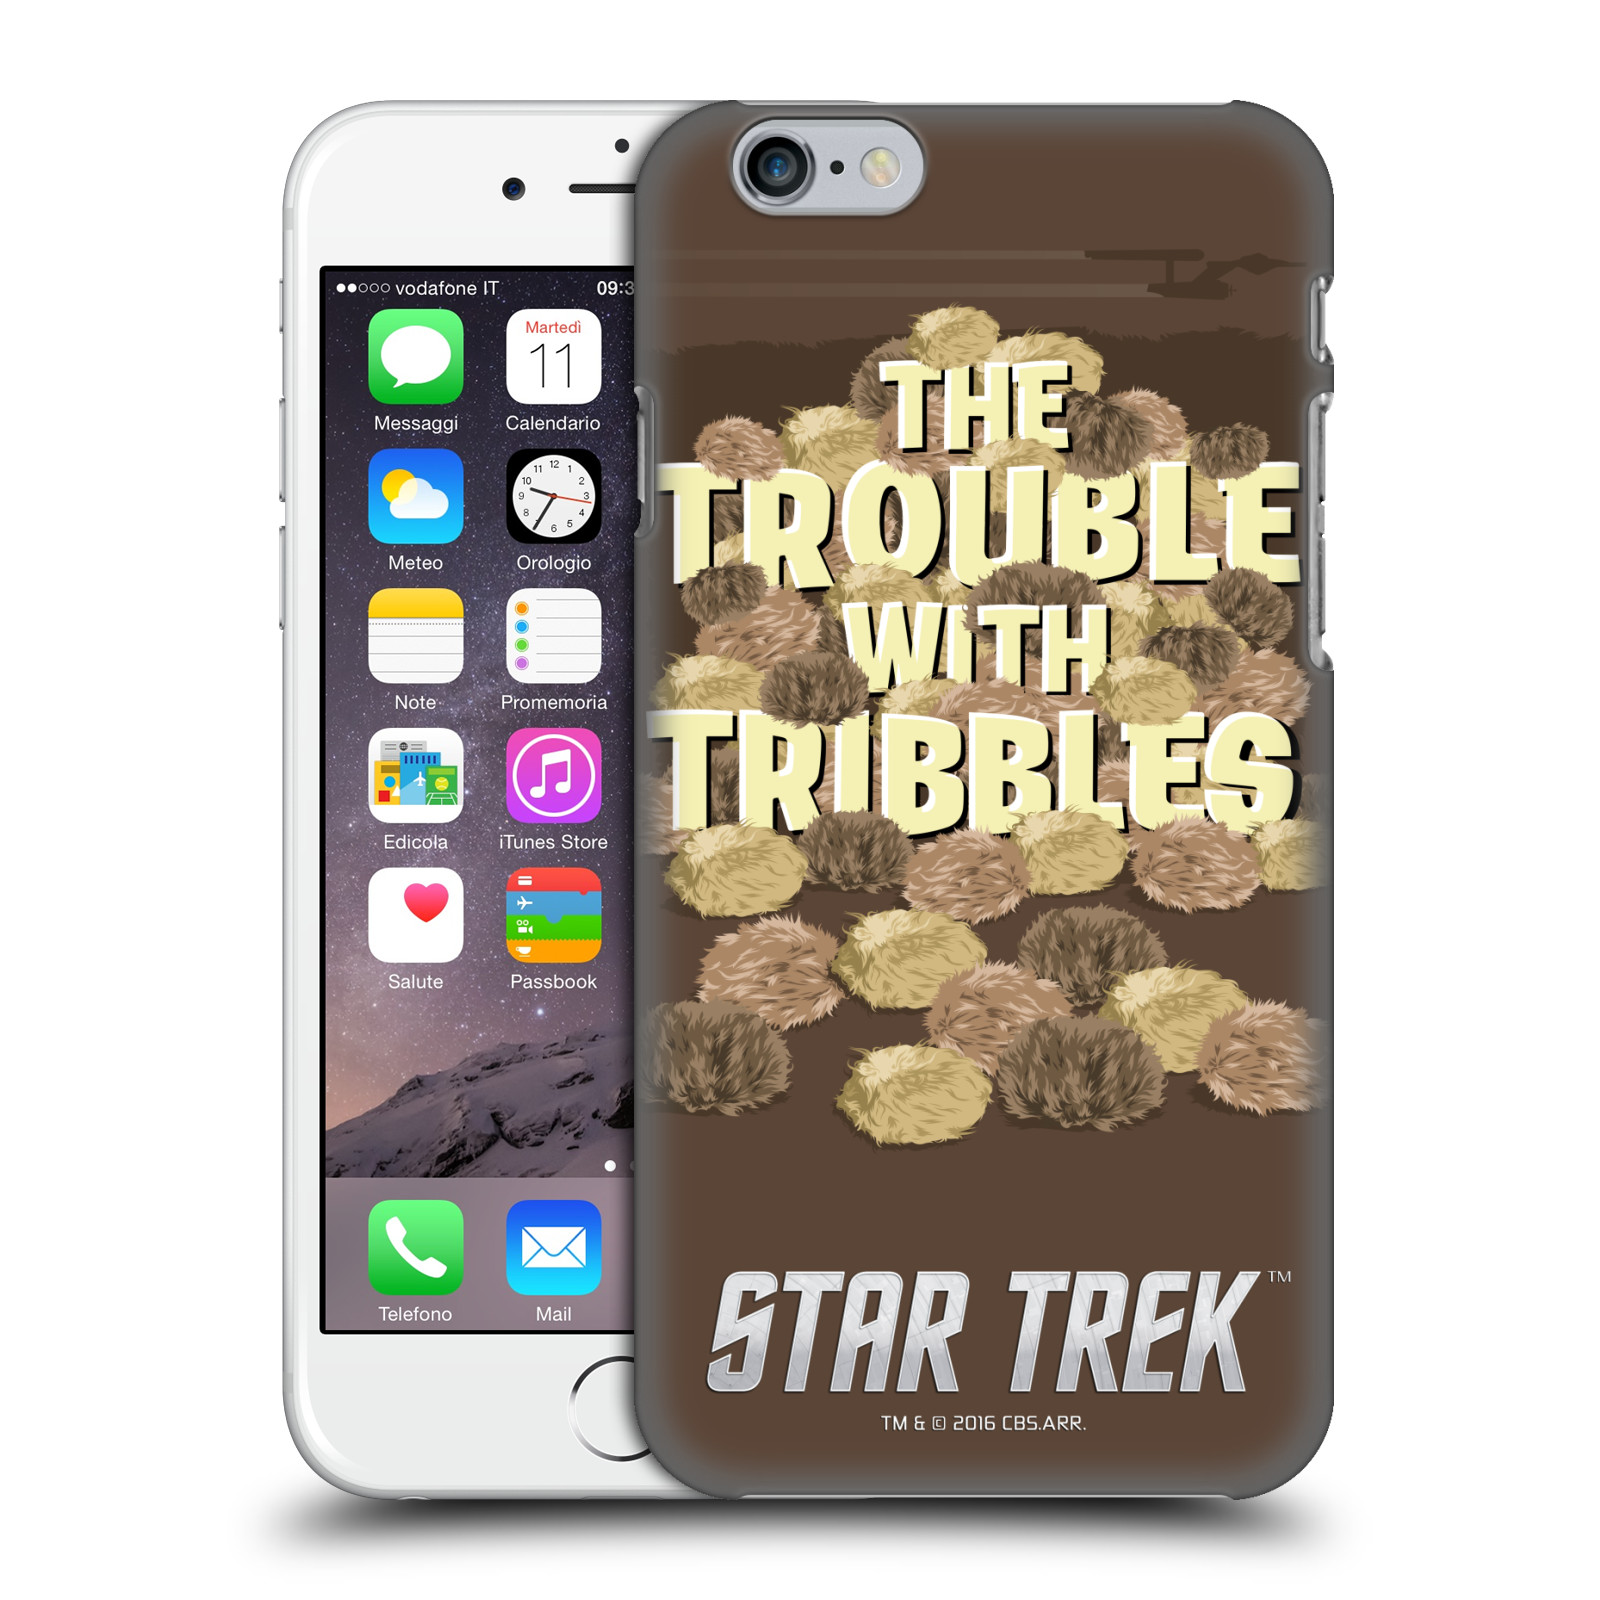 Star Trek Iconic Characters TOS-Tribbles